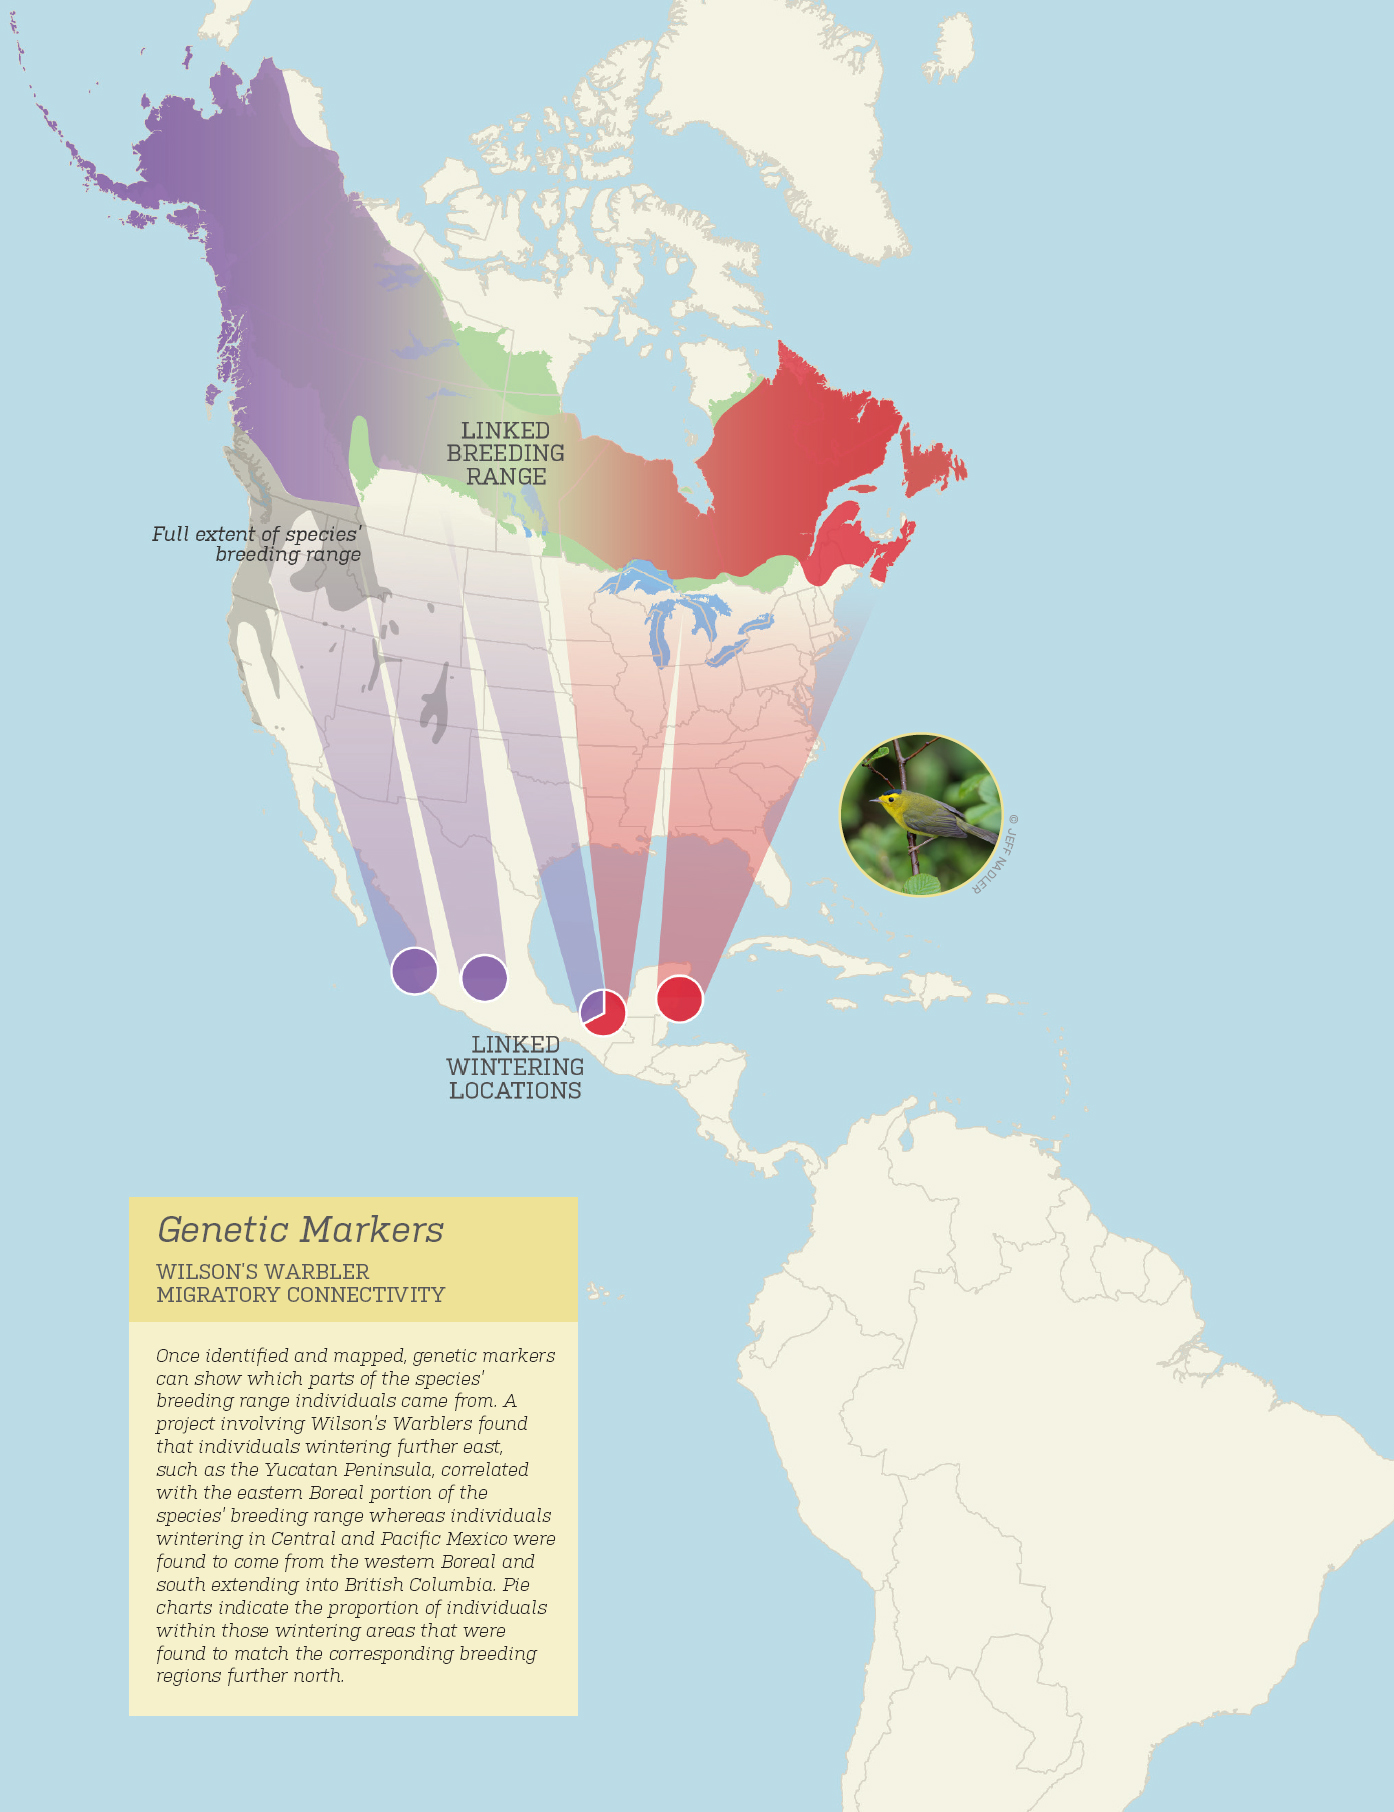 An illustration of wintering areas that were found to match corresponding breeding regions further north. (Boreal Songbird Initiative)